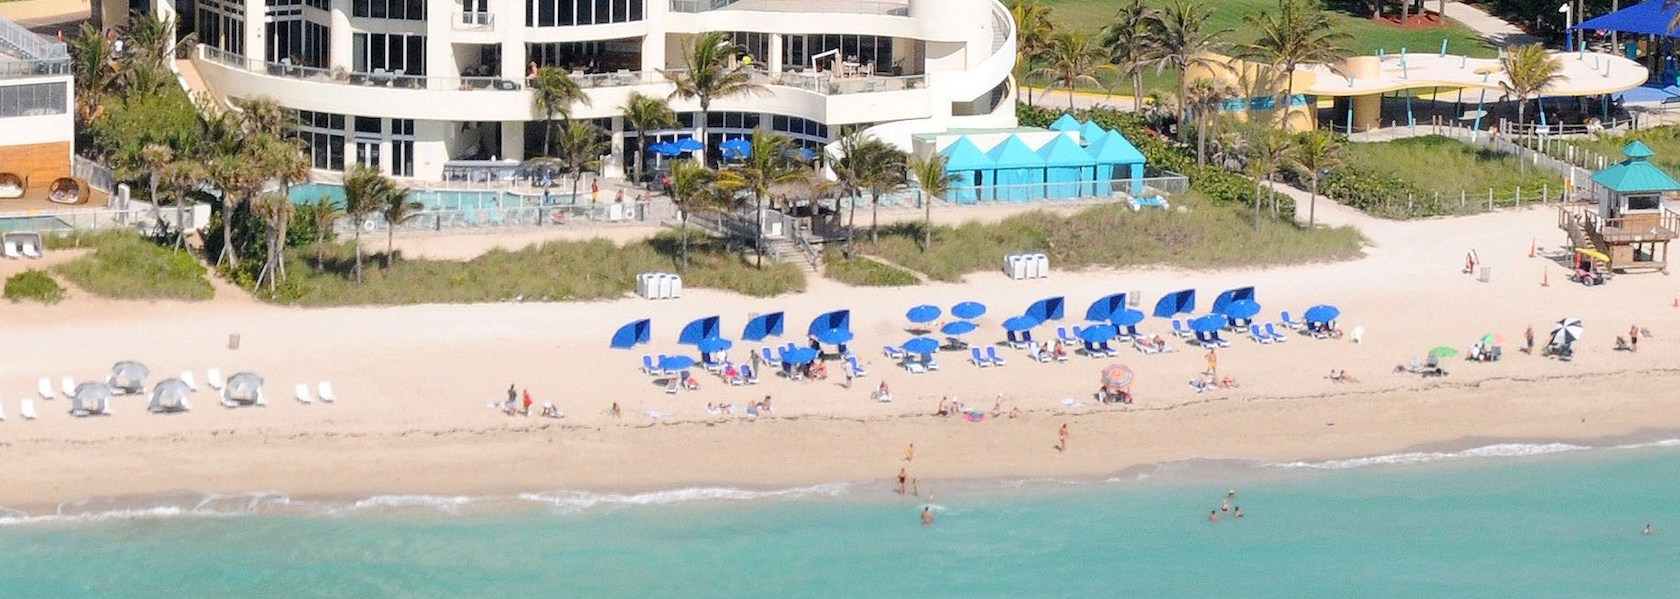 View of the Doubletree Ocean Point Resort with blue umbrellas and lounge chairs on the beach next to the ocean.